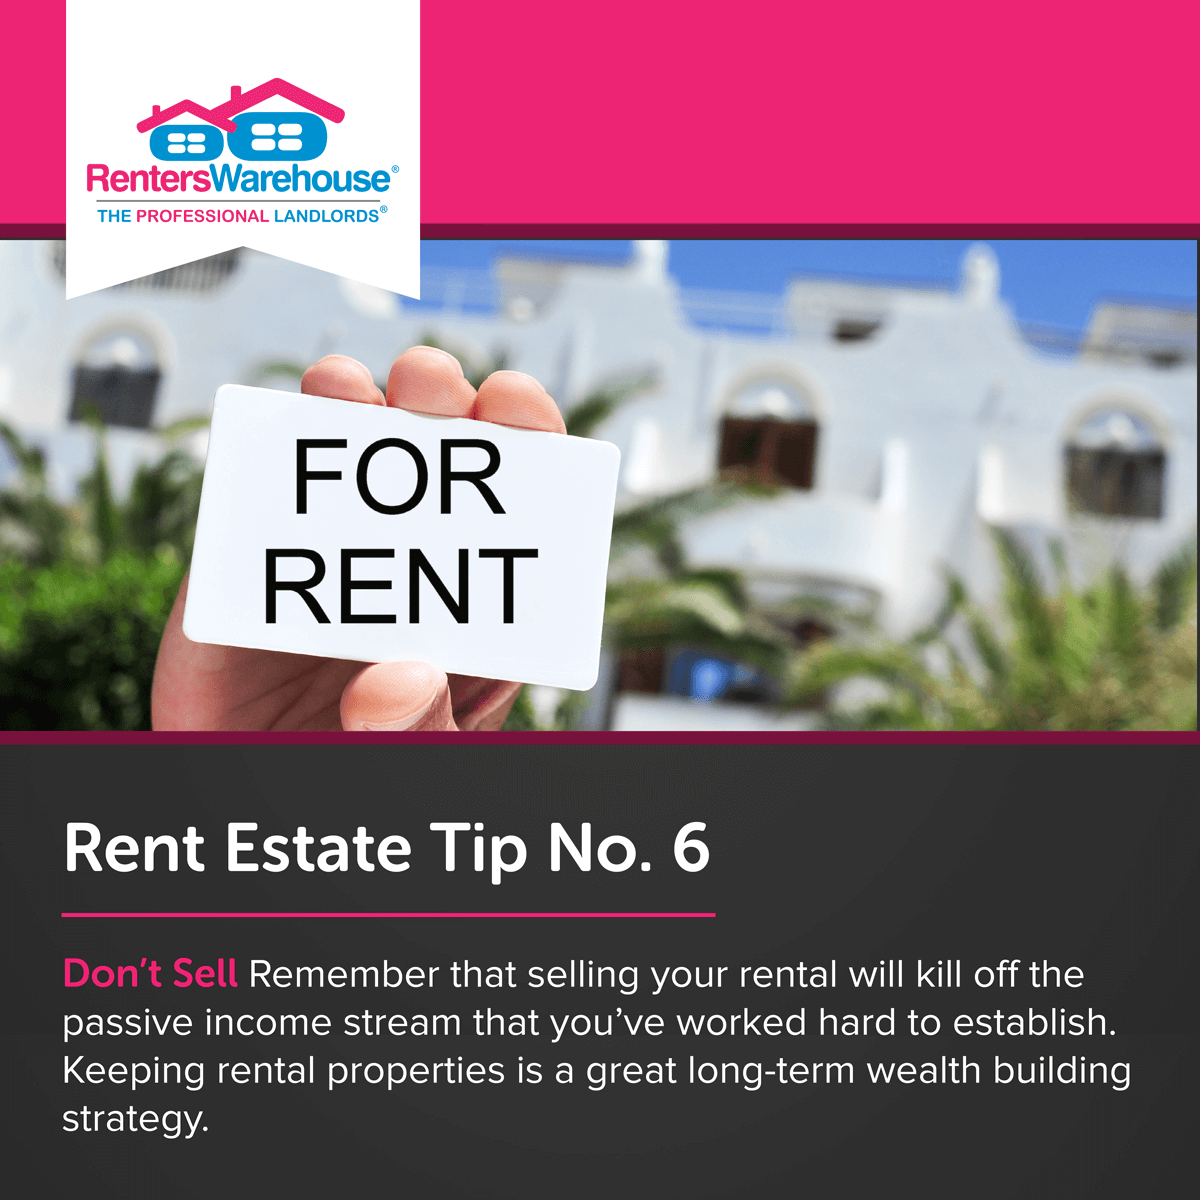 Image related to Rent Estate™ Tip No. 6 - Don't Sell